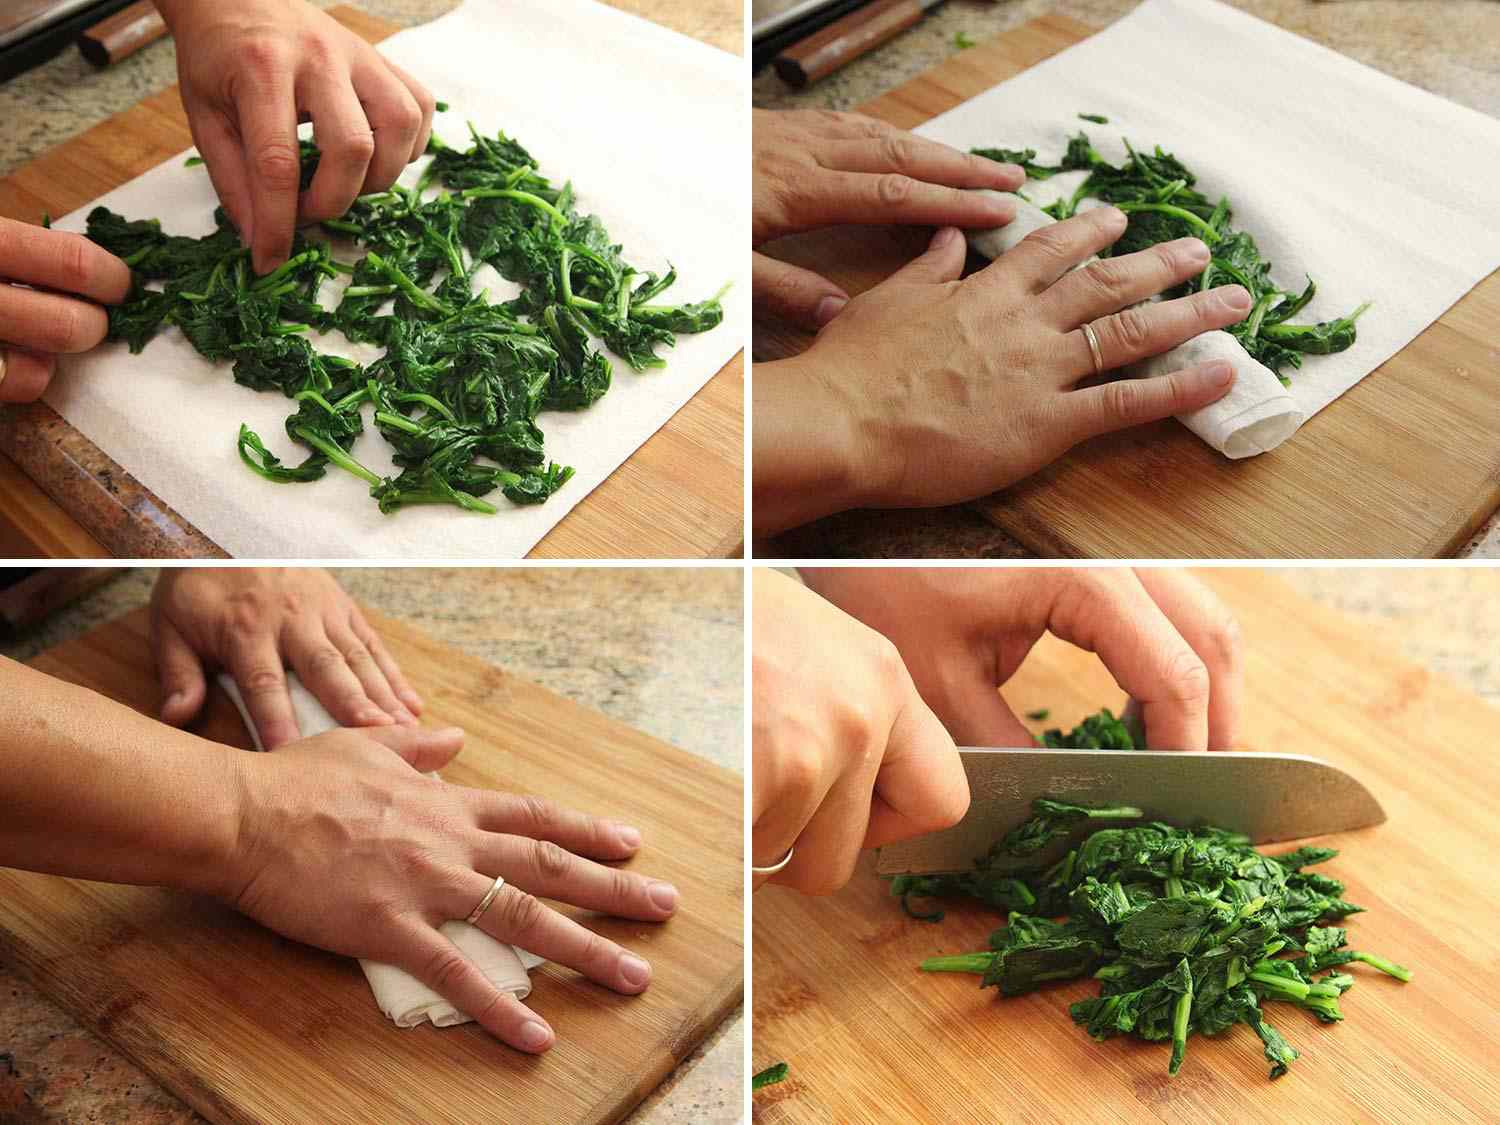 Drying spinach with towel